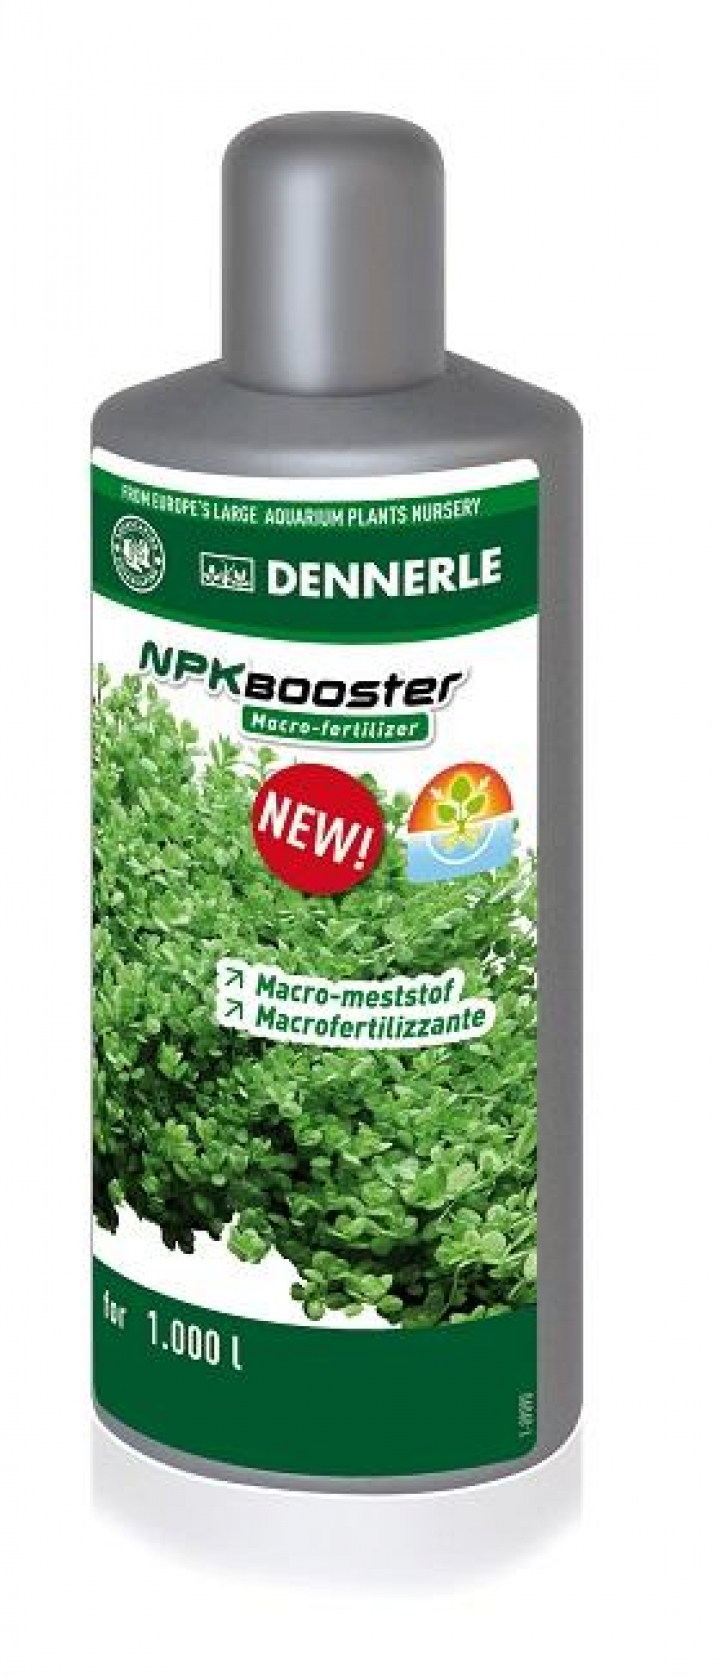 Dennerle - NPK Booster 250 ml